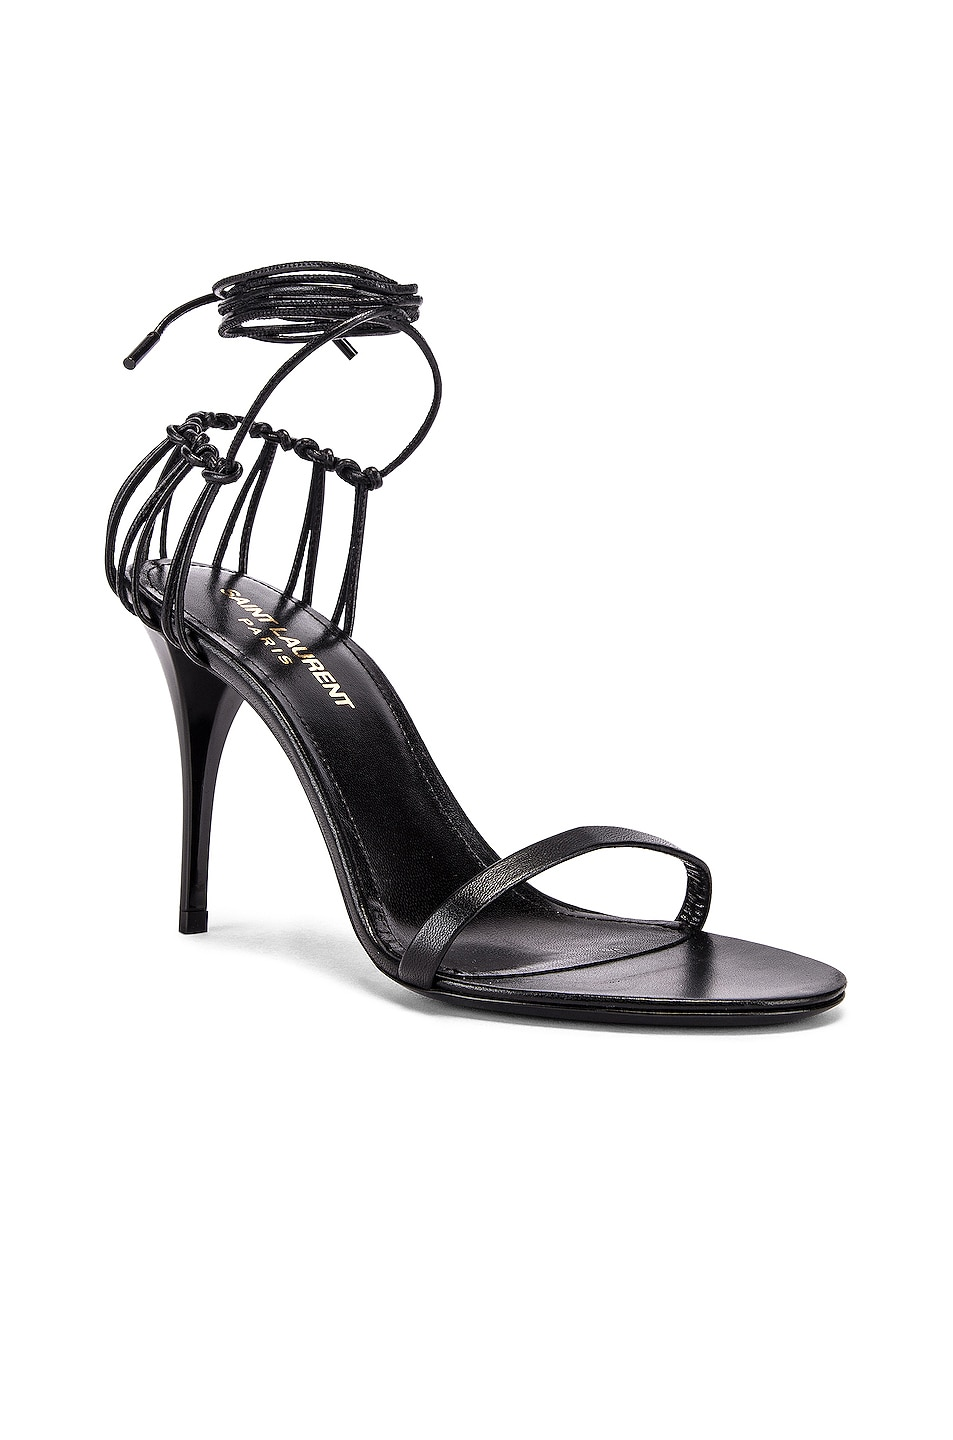 Image 2 of Saint Laurent Lexi Sandals in Black